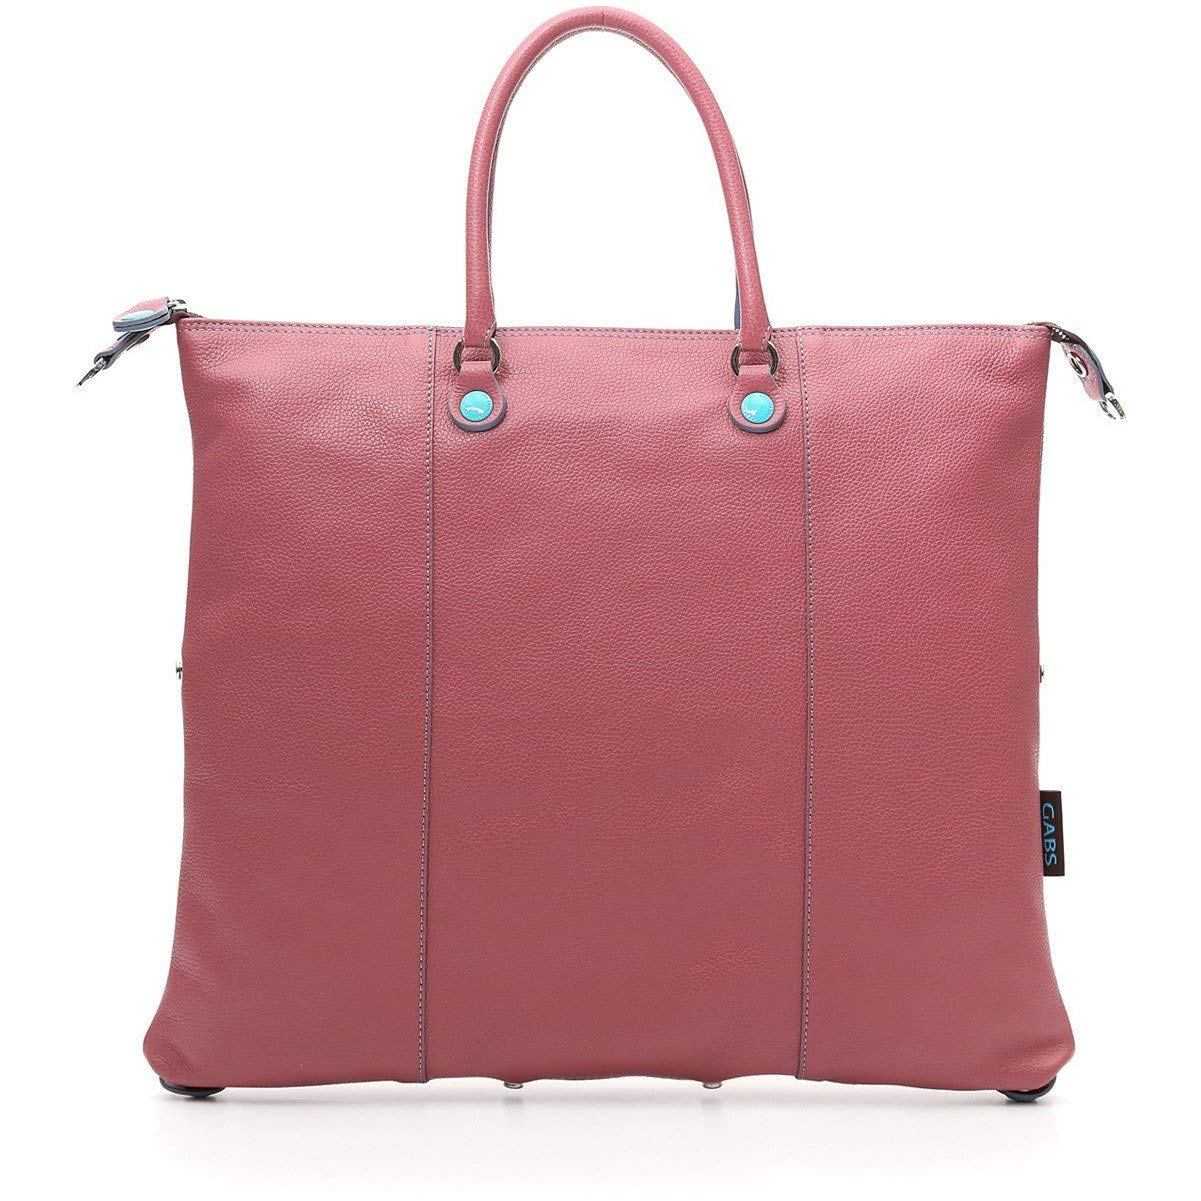 Gabs G3 Hand Bag L Taupe  Amazon.co.uk  Shoes   Bags bc1f6c577b04c